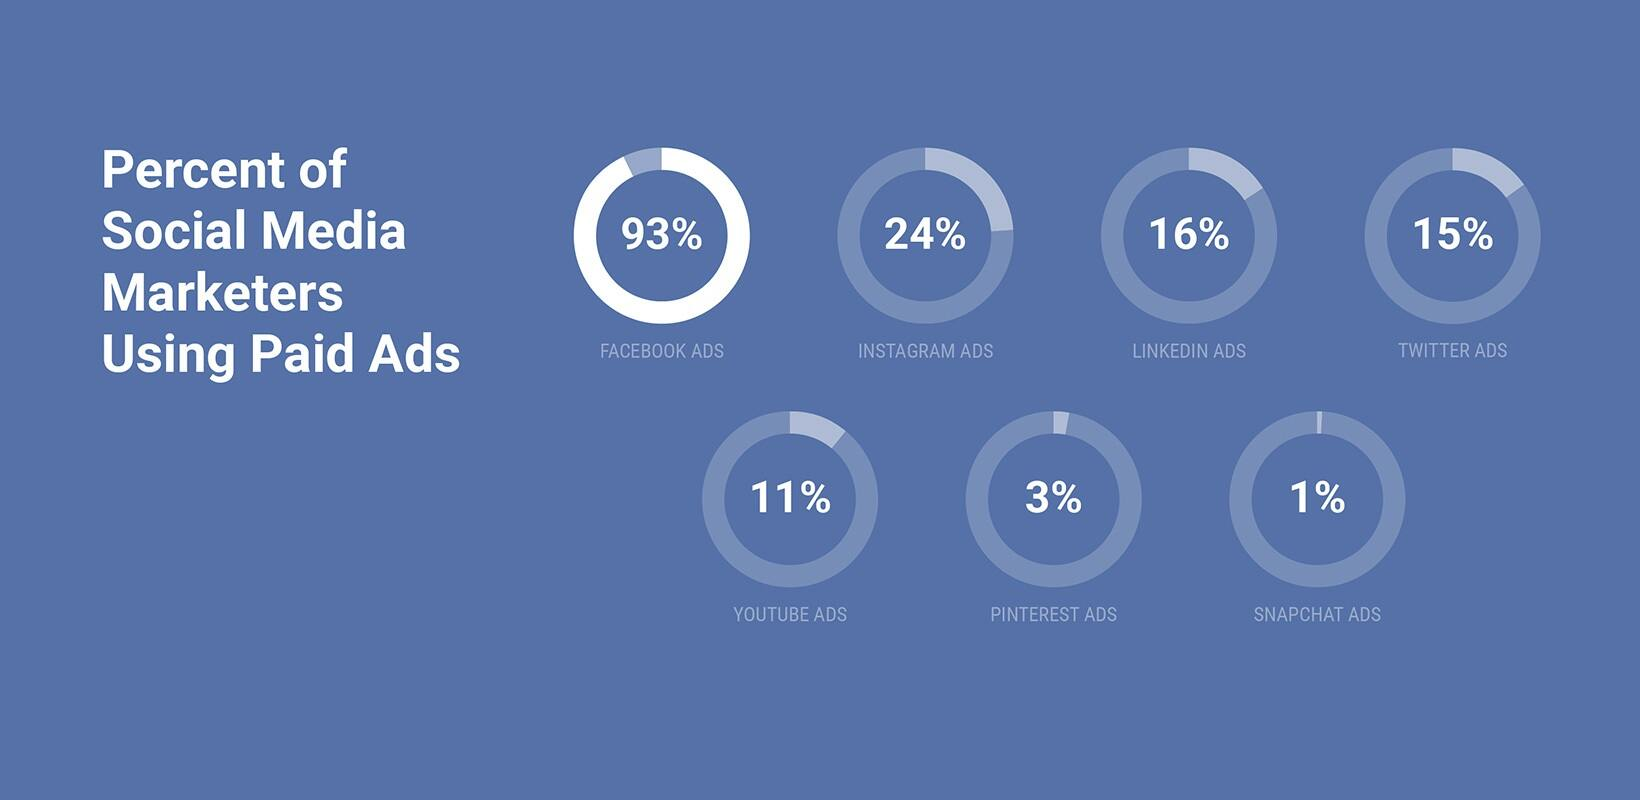 Social media marketers are more likely to use facebook than any other paid ad type